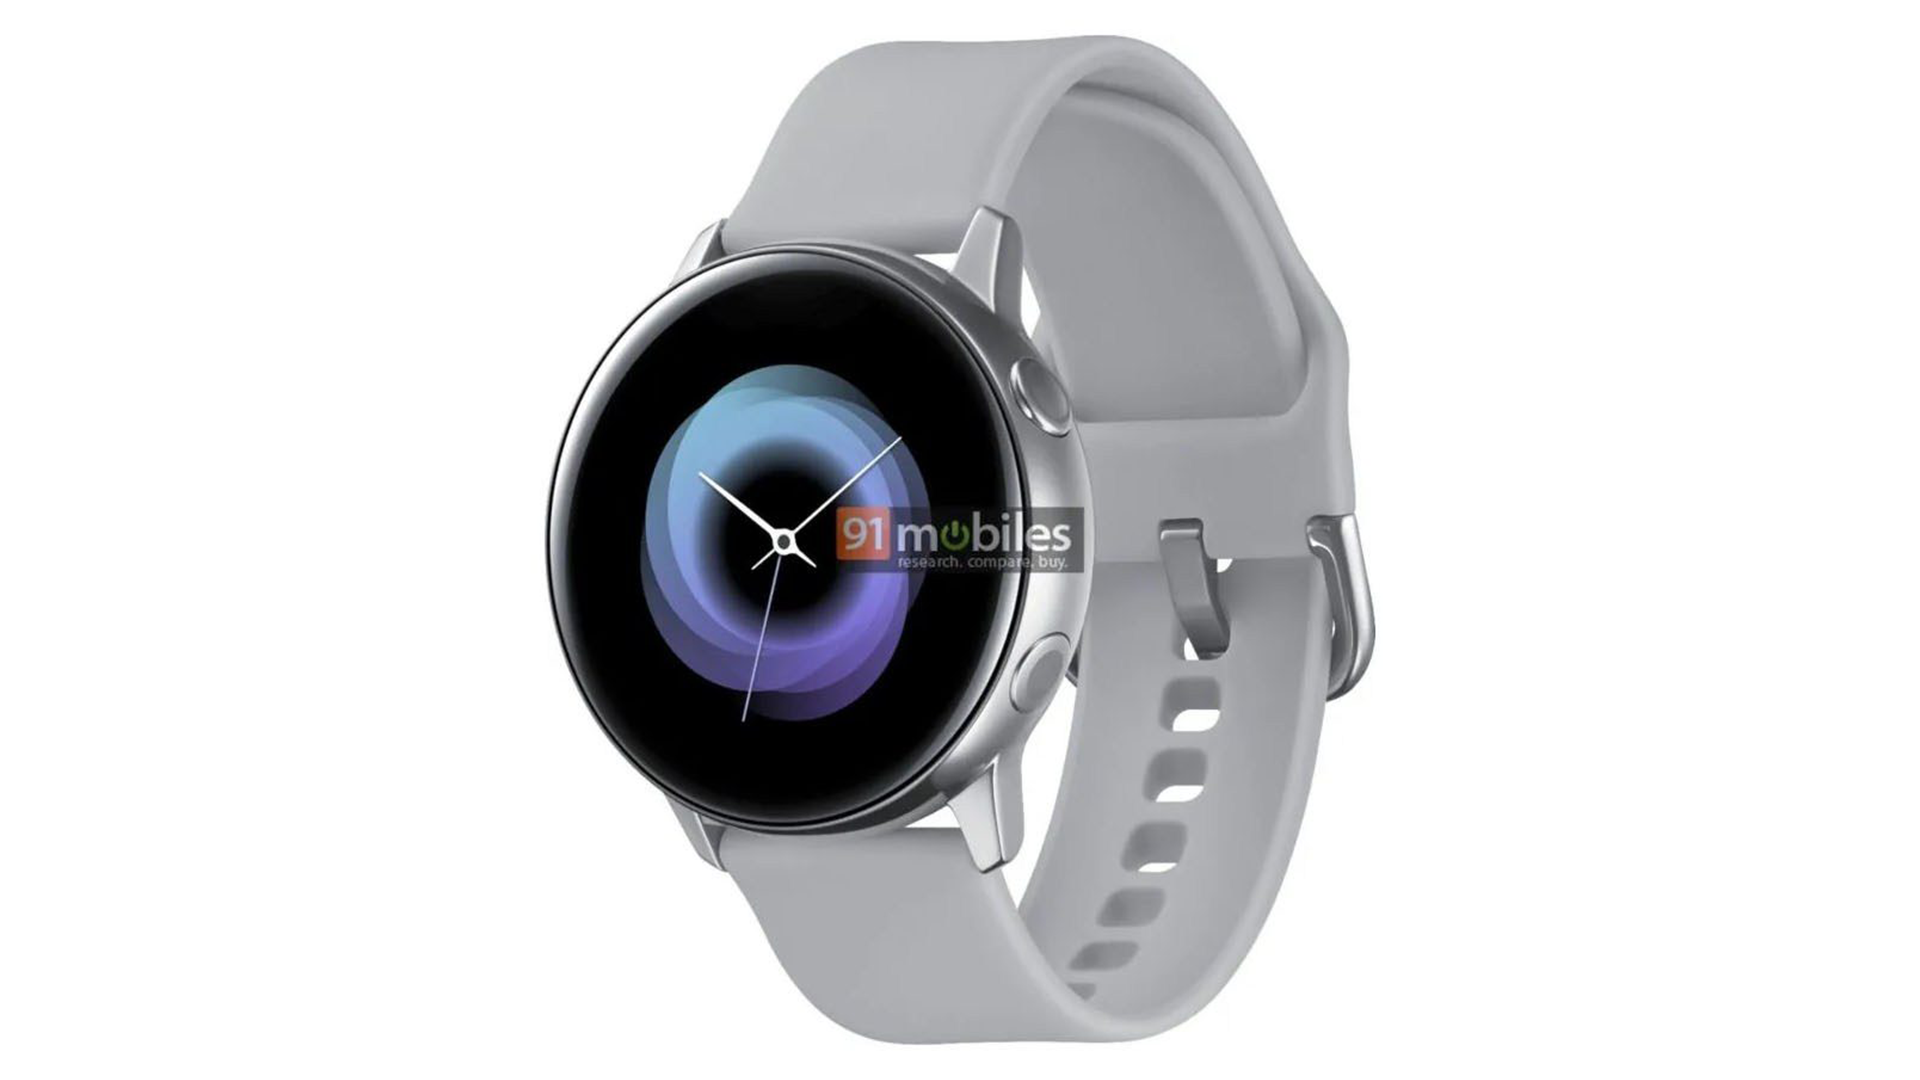 thumb-galaxywatch.png